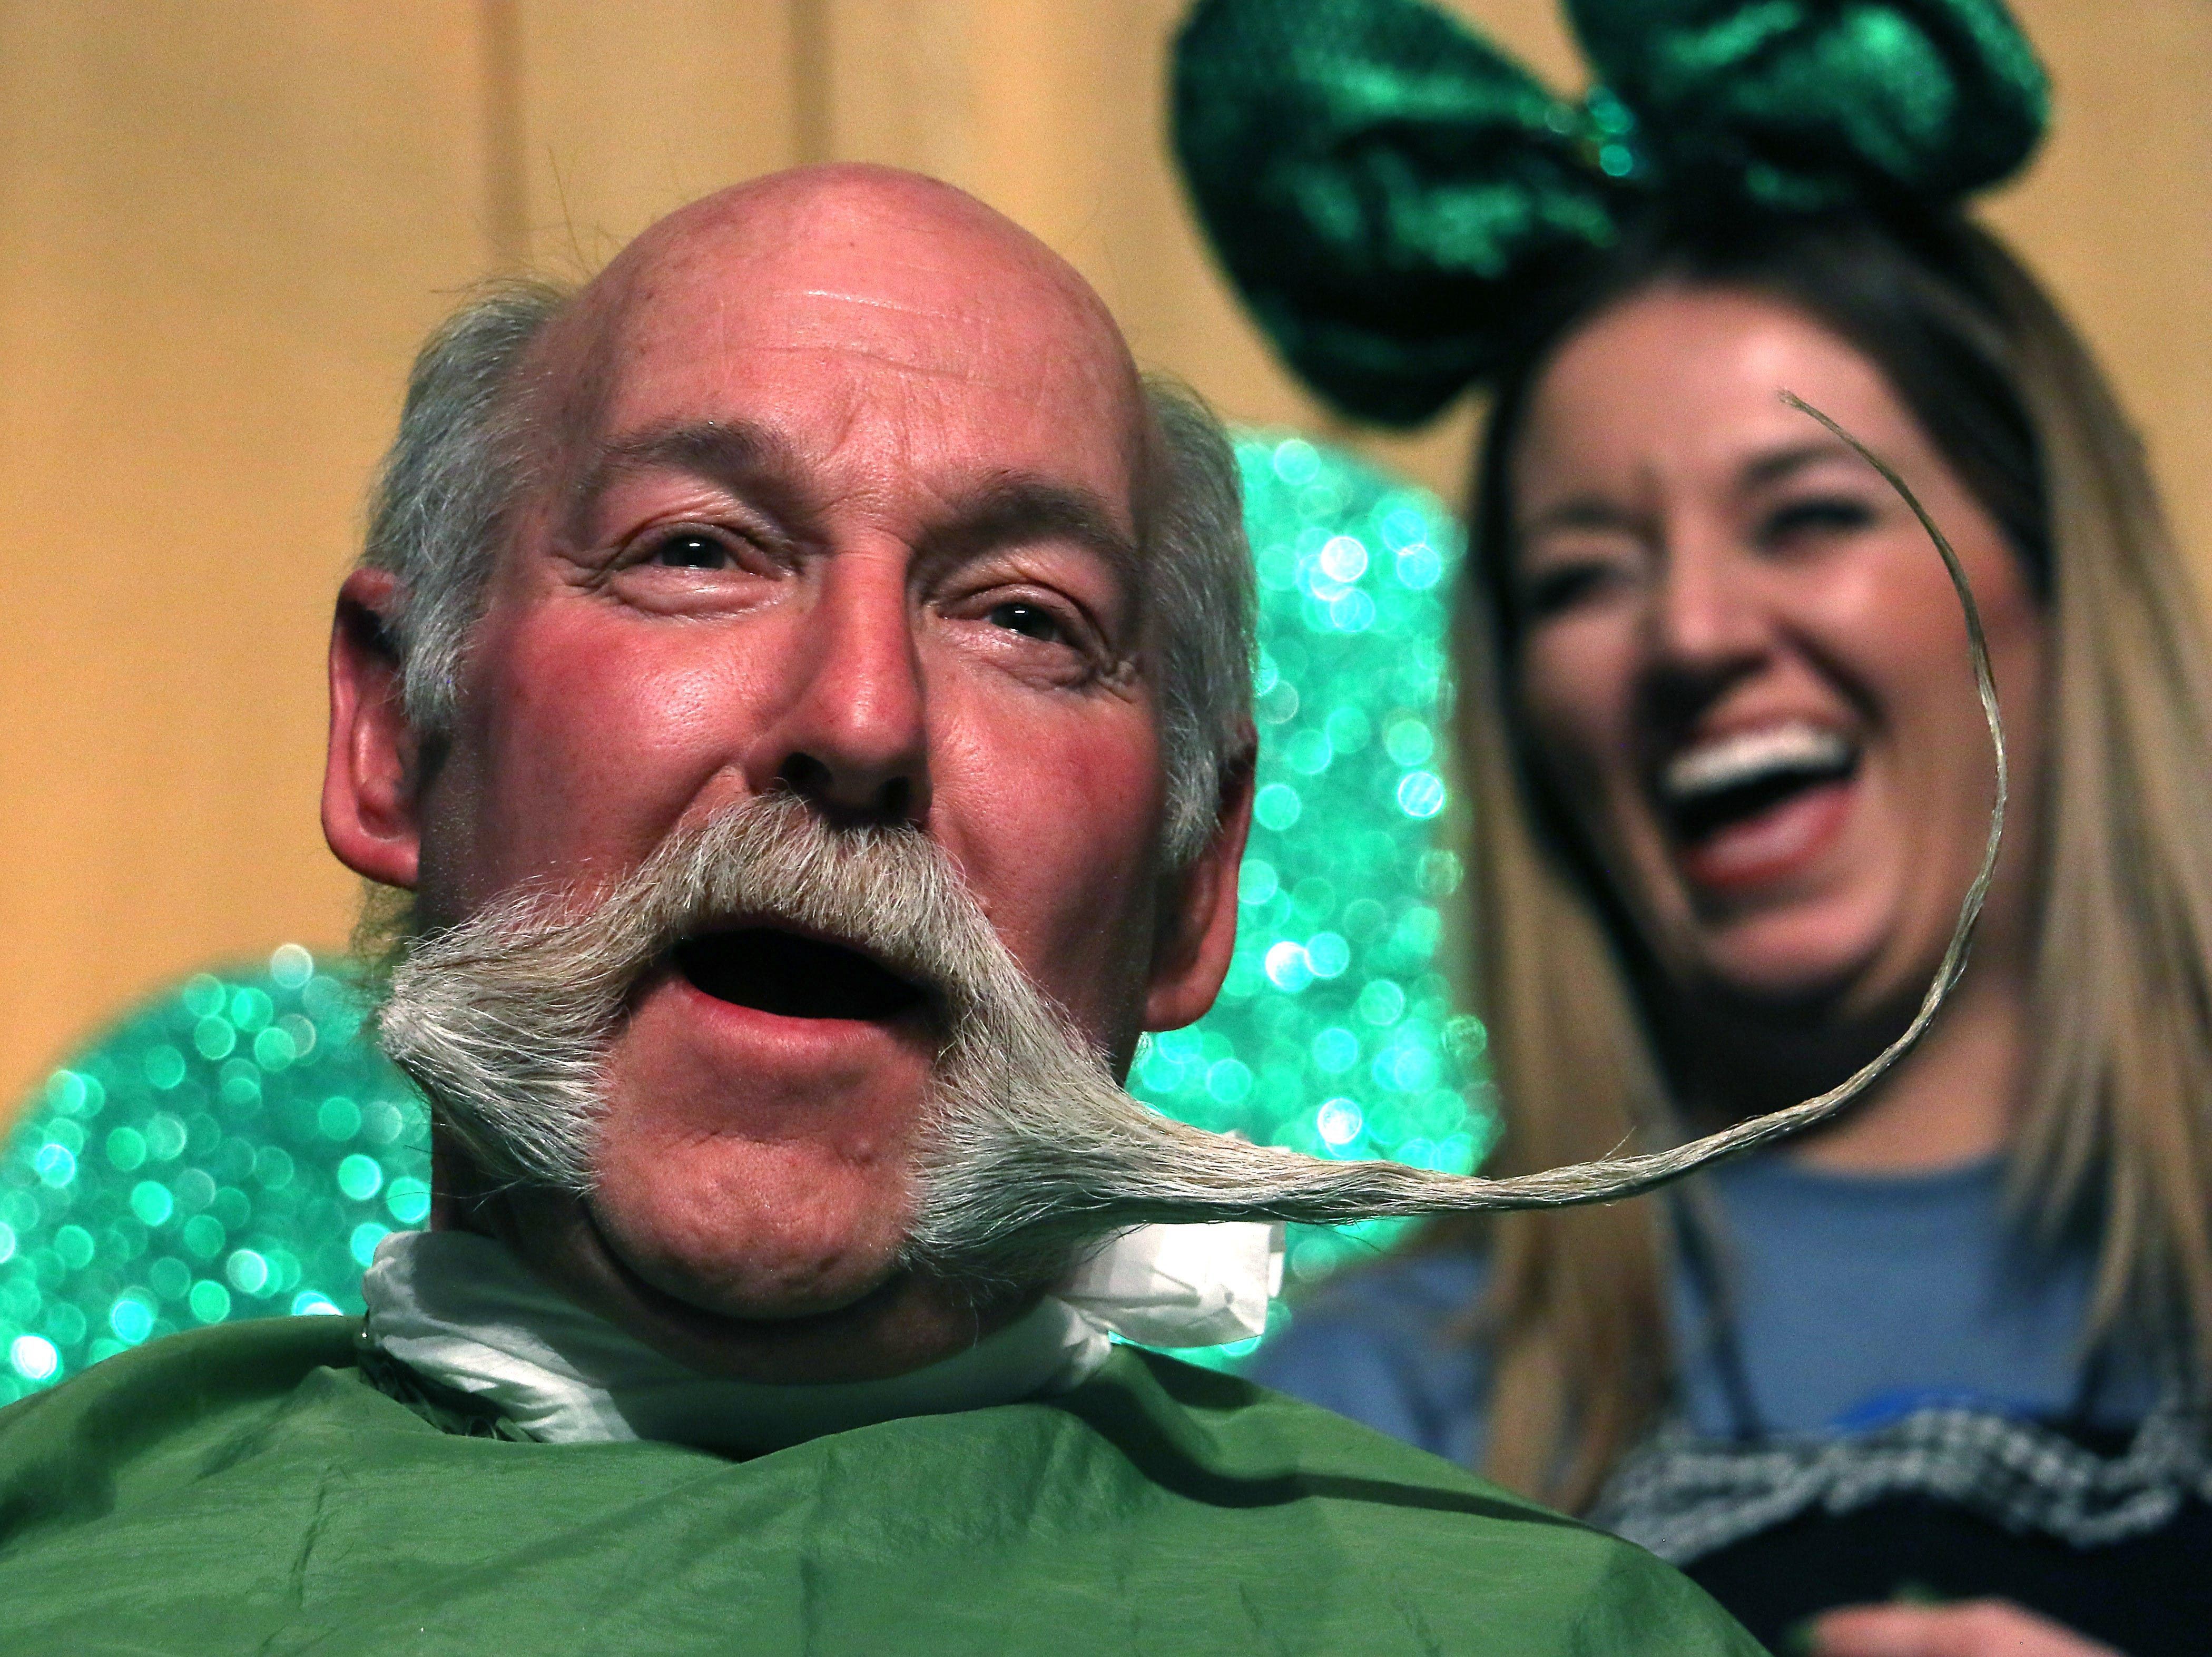 A participant gets his impressive mustache cut off during the Northern Nevada Children Cancer Foundation and the St. Baldrick's Foundation's fundraising head-shaving event at the Downtown Reno Ballroom on March 15, 2019.